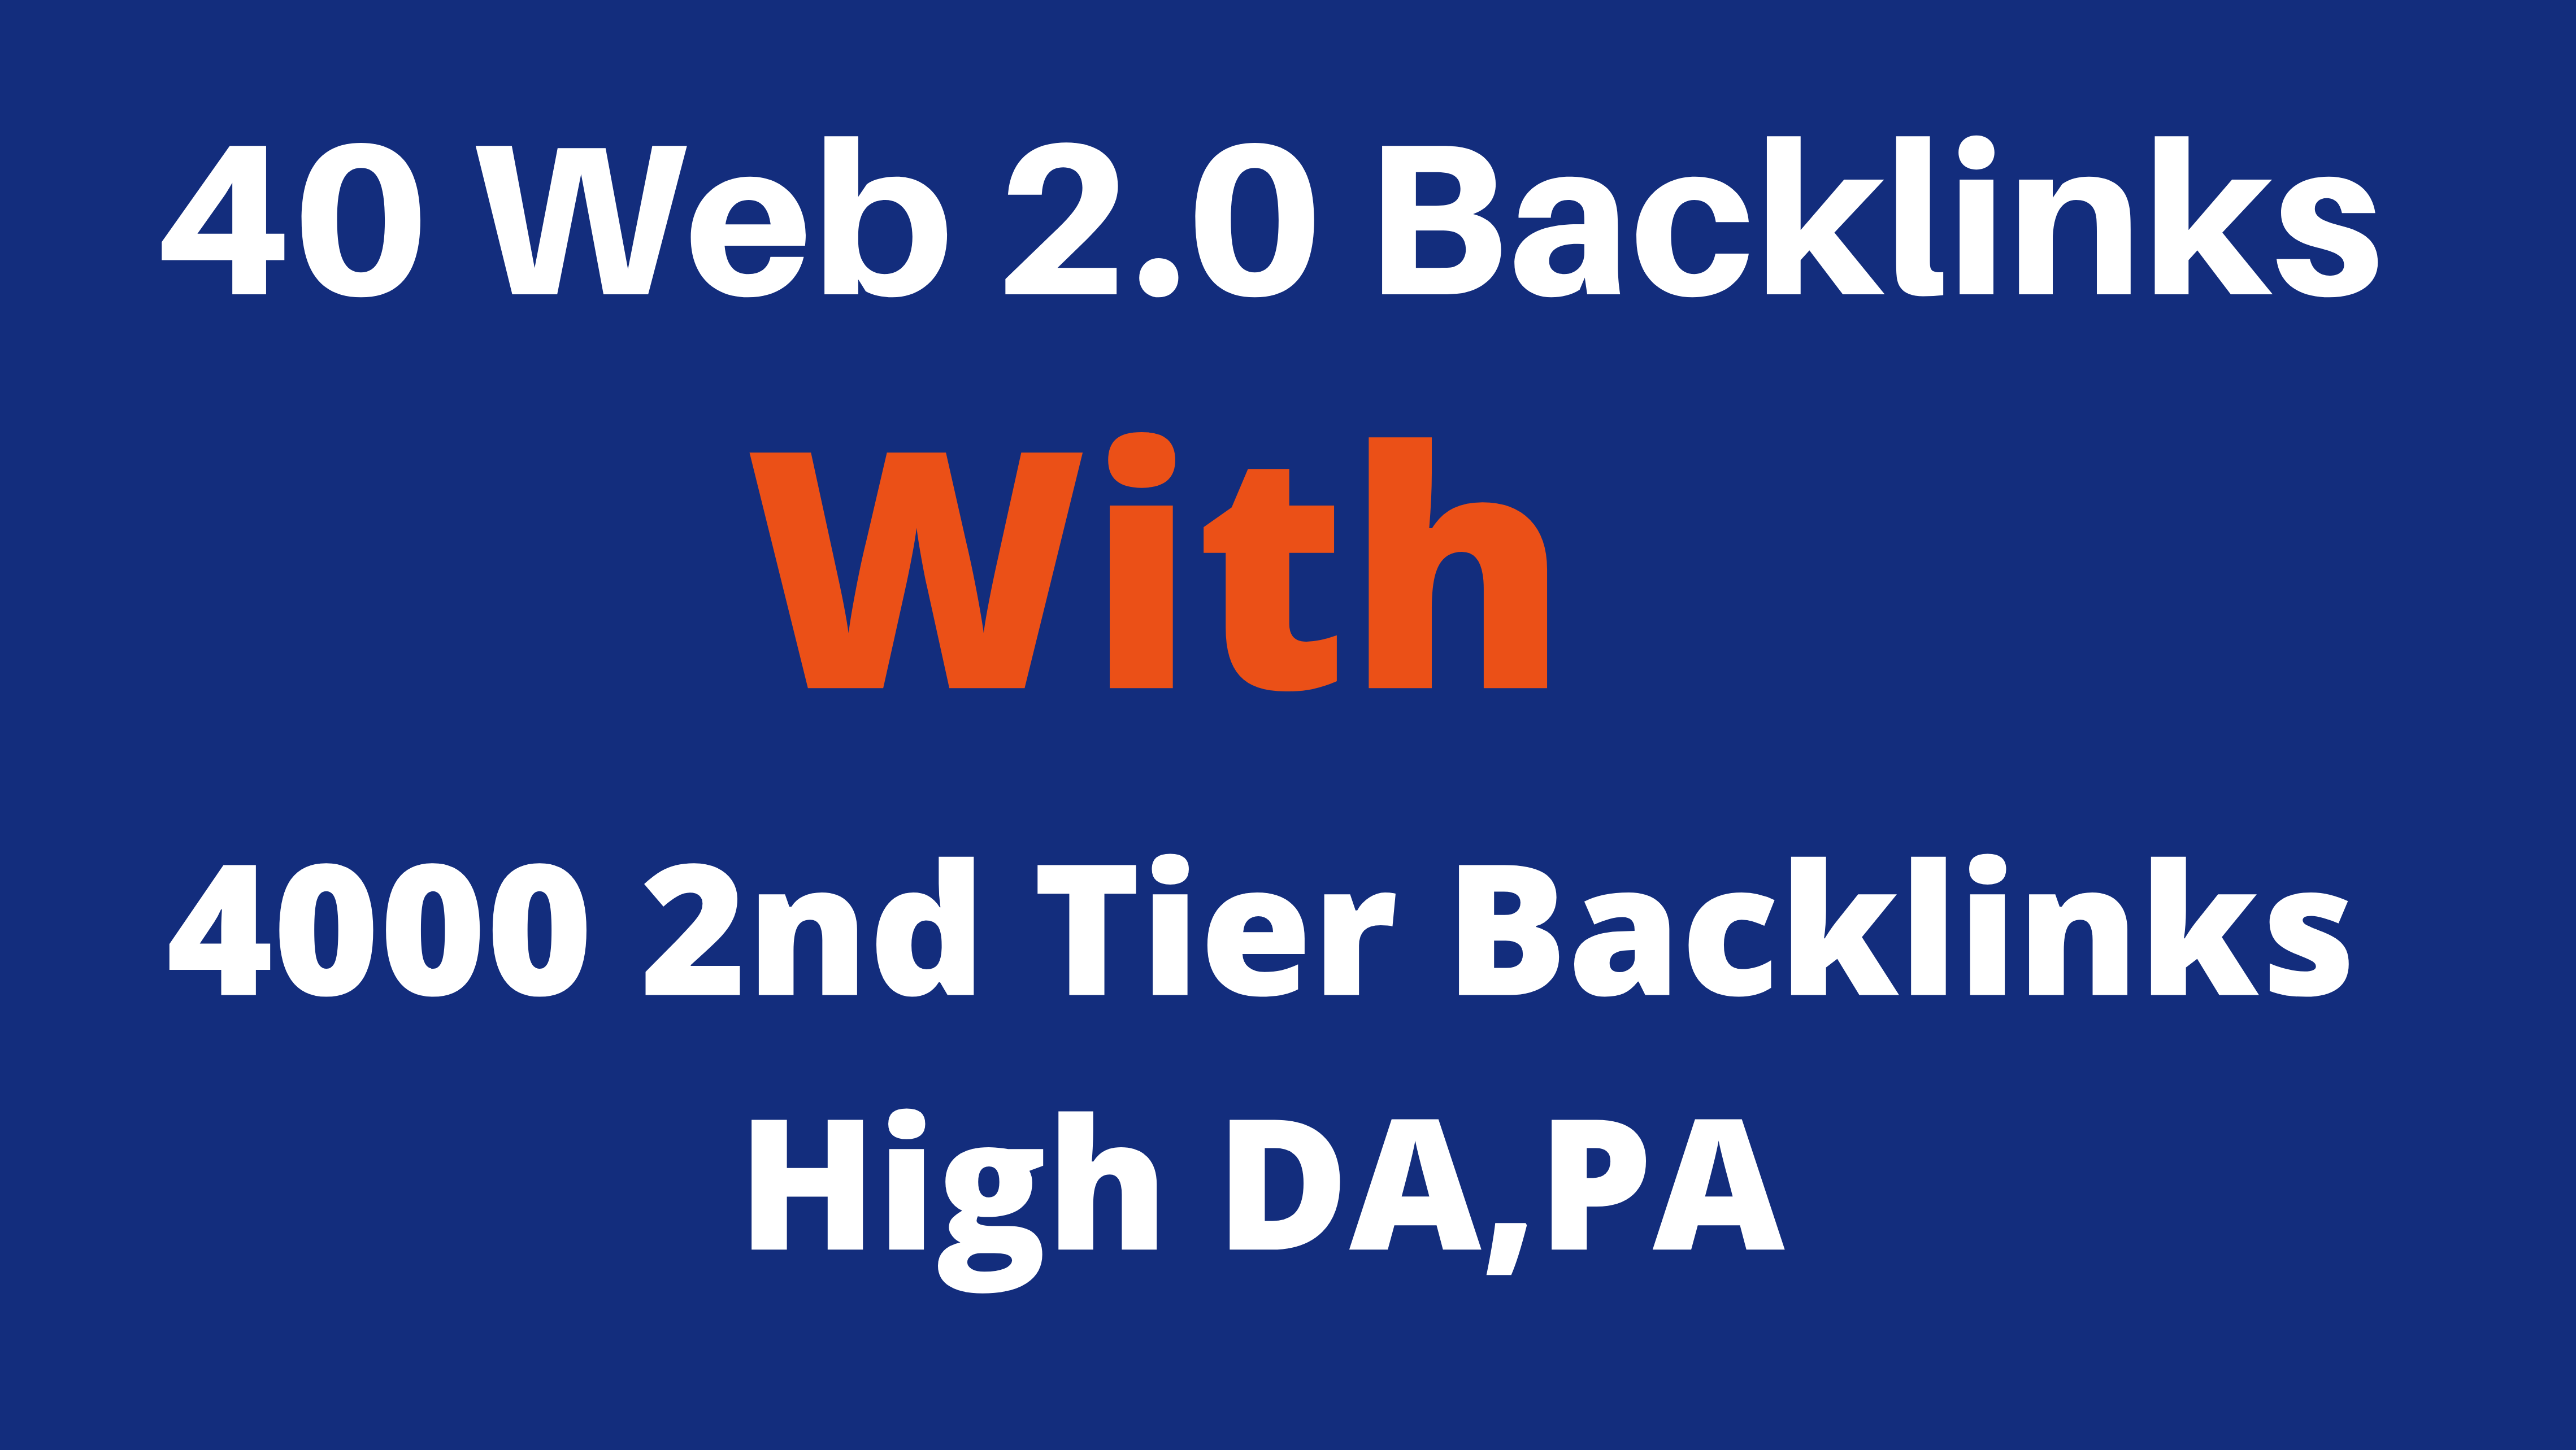 40 Web 2.0 Blog With 4000 2nd Tier Backlinks High DA,PA